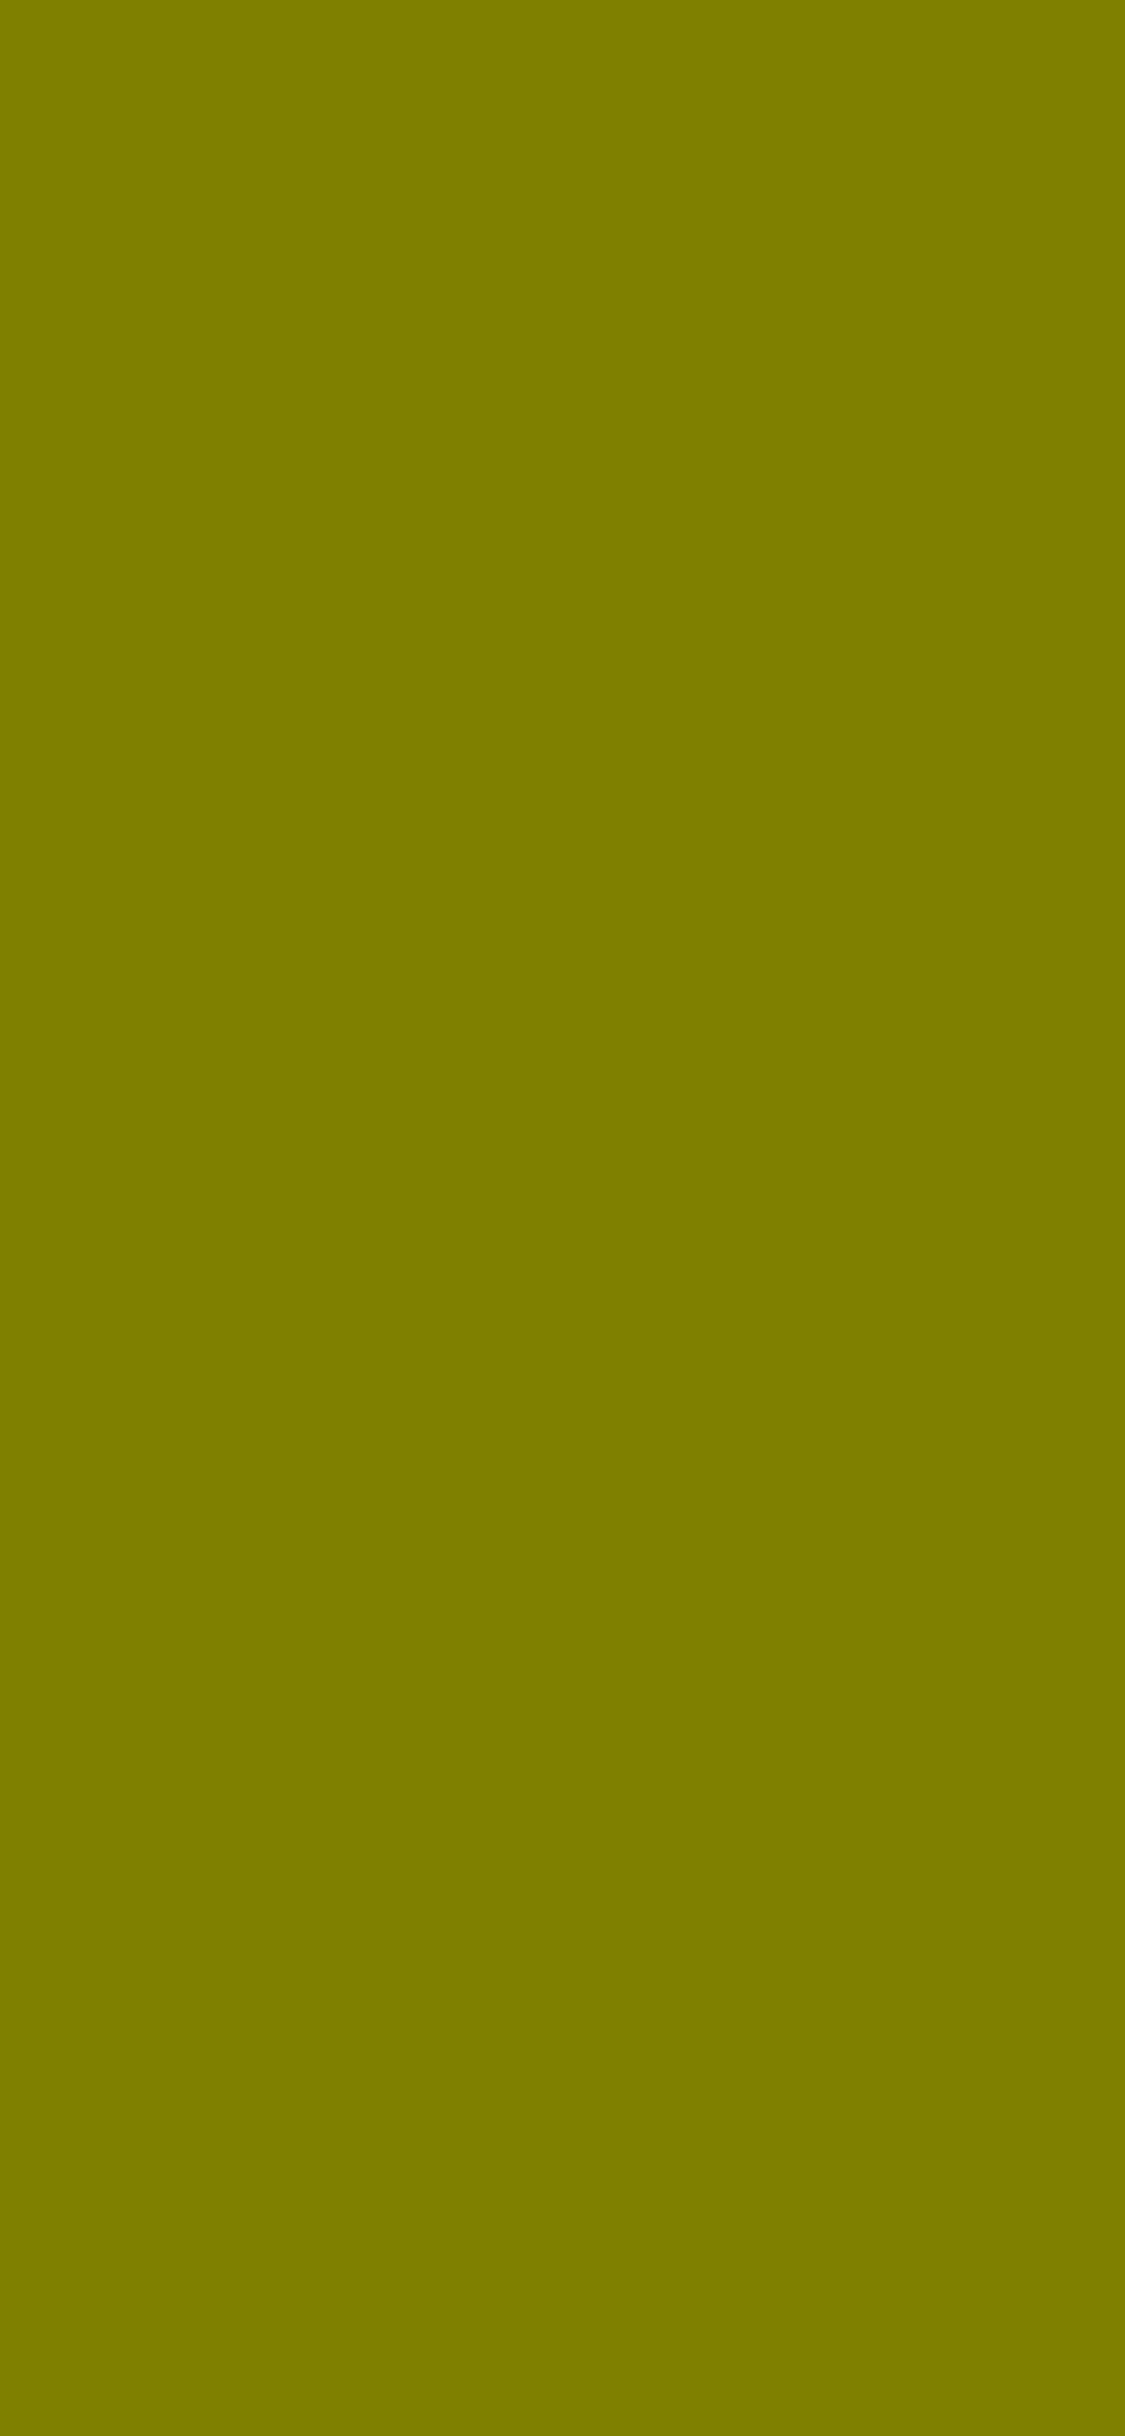 1125x2436 Olive Solid Color Background